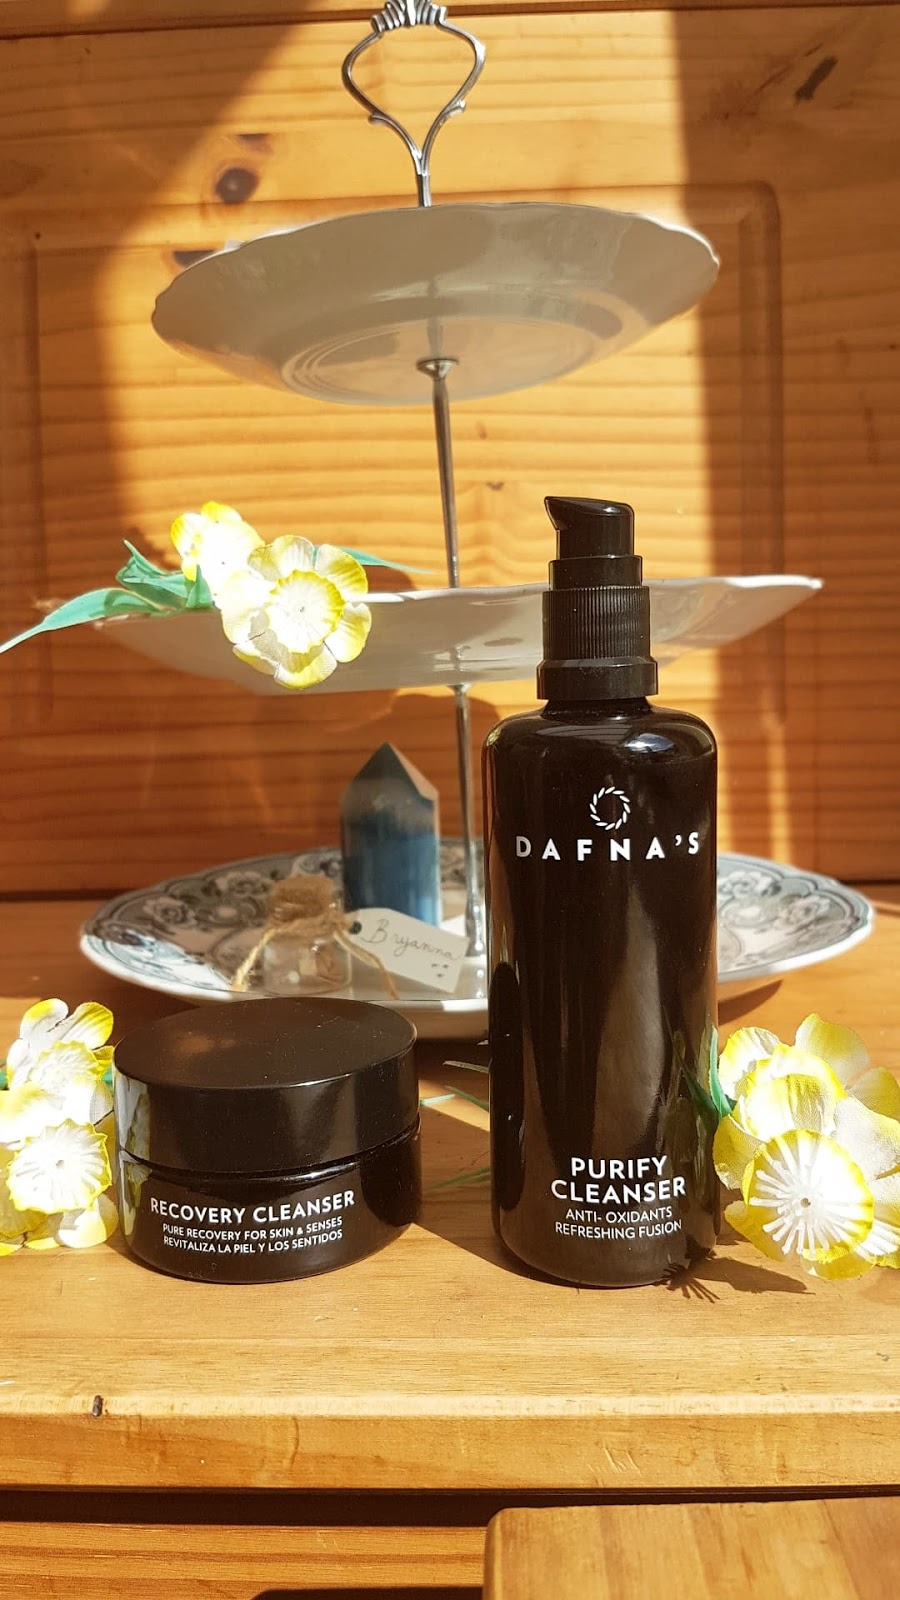 Dafna's skincare cleansers - Purify and Recovery review